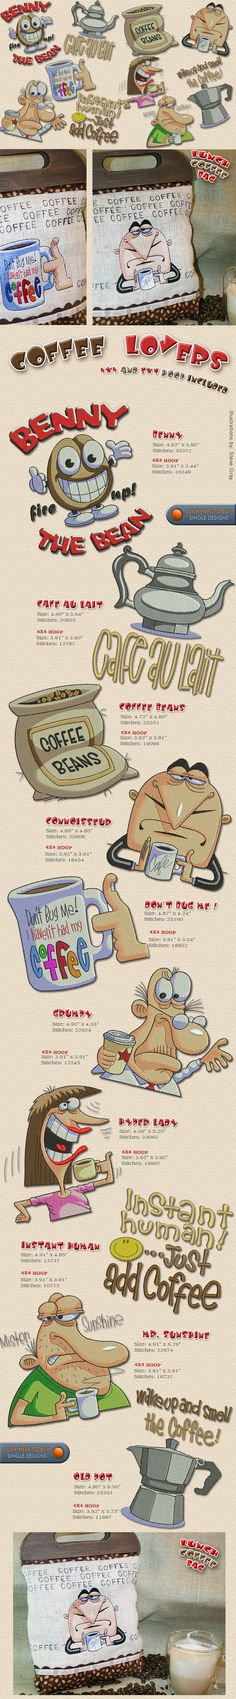 COFFEE LOVERS Embroidery Designs Free Embroidery Design Patterns Applique